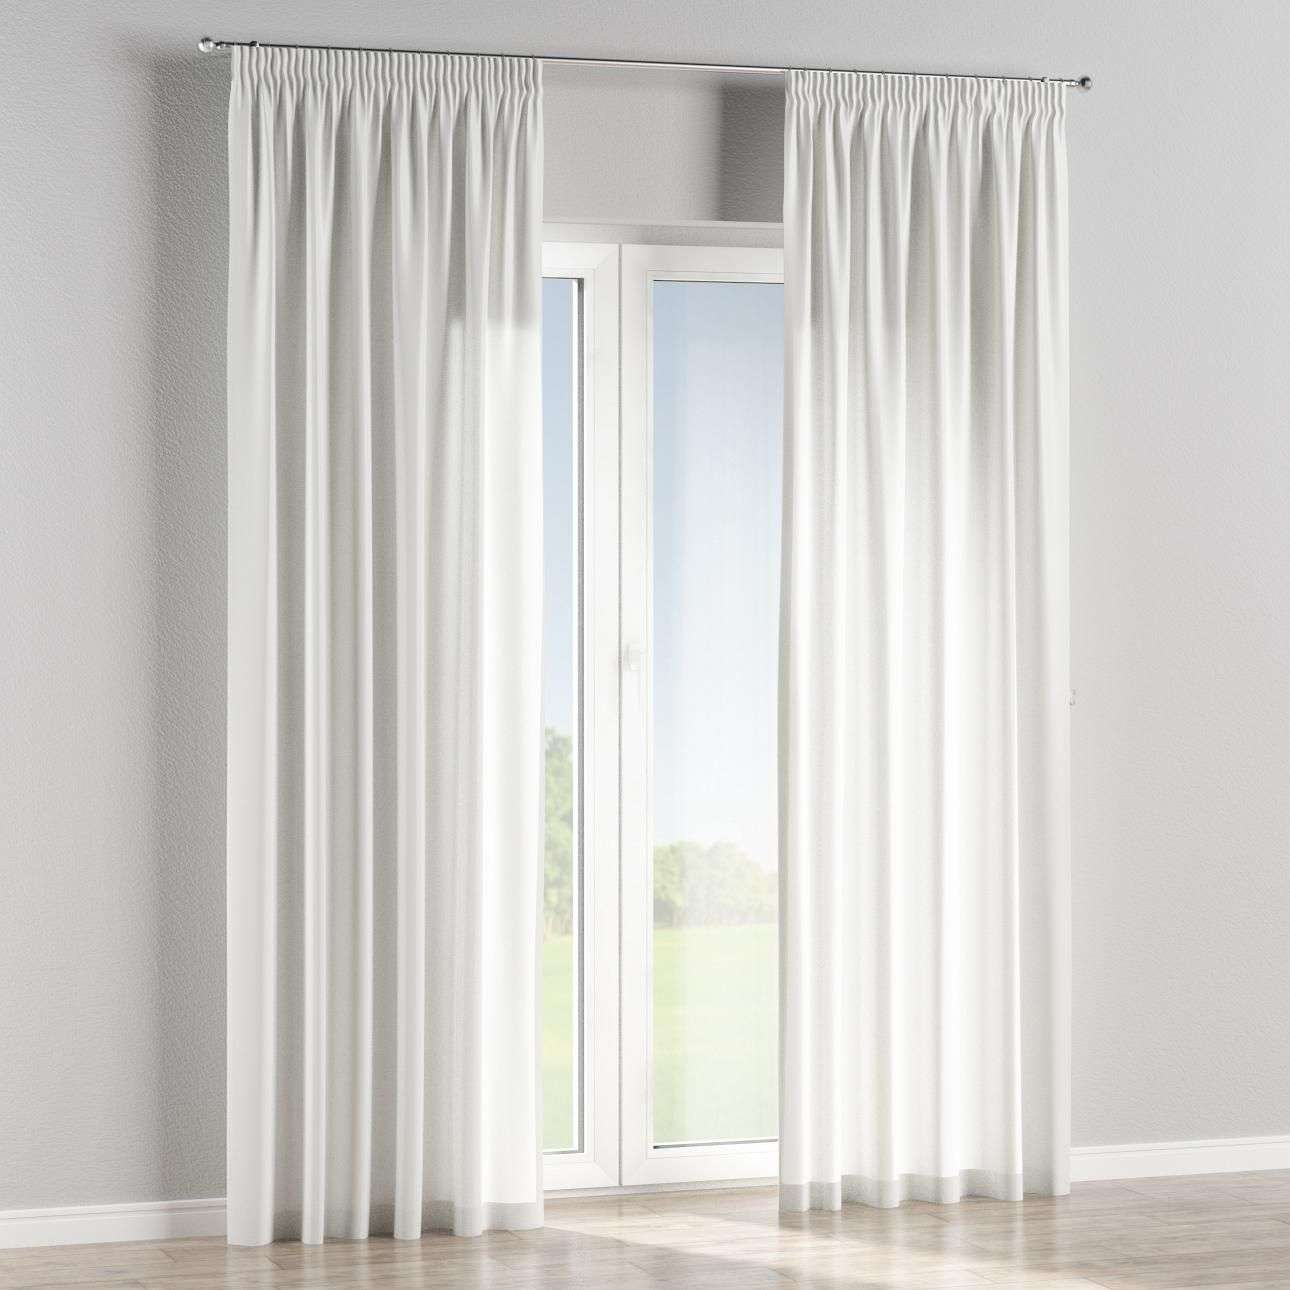 Pencil pleat curtains in collection Rustica, fabric: 138-16